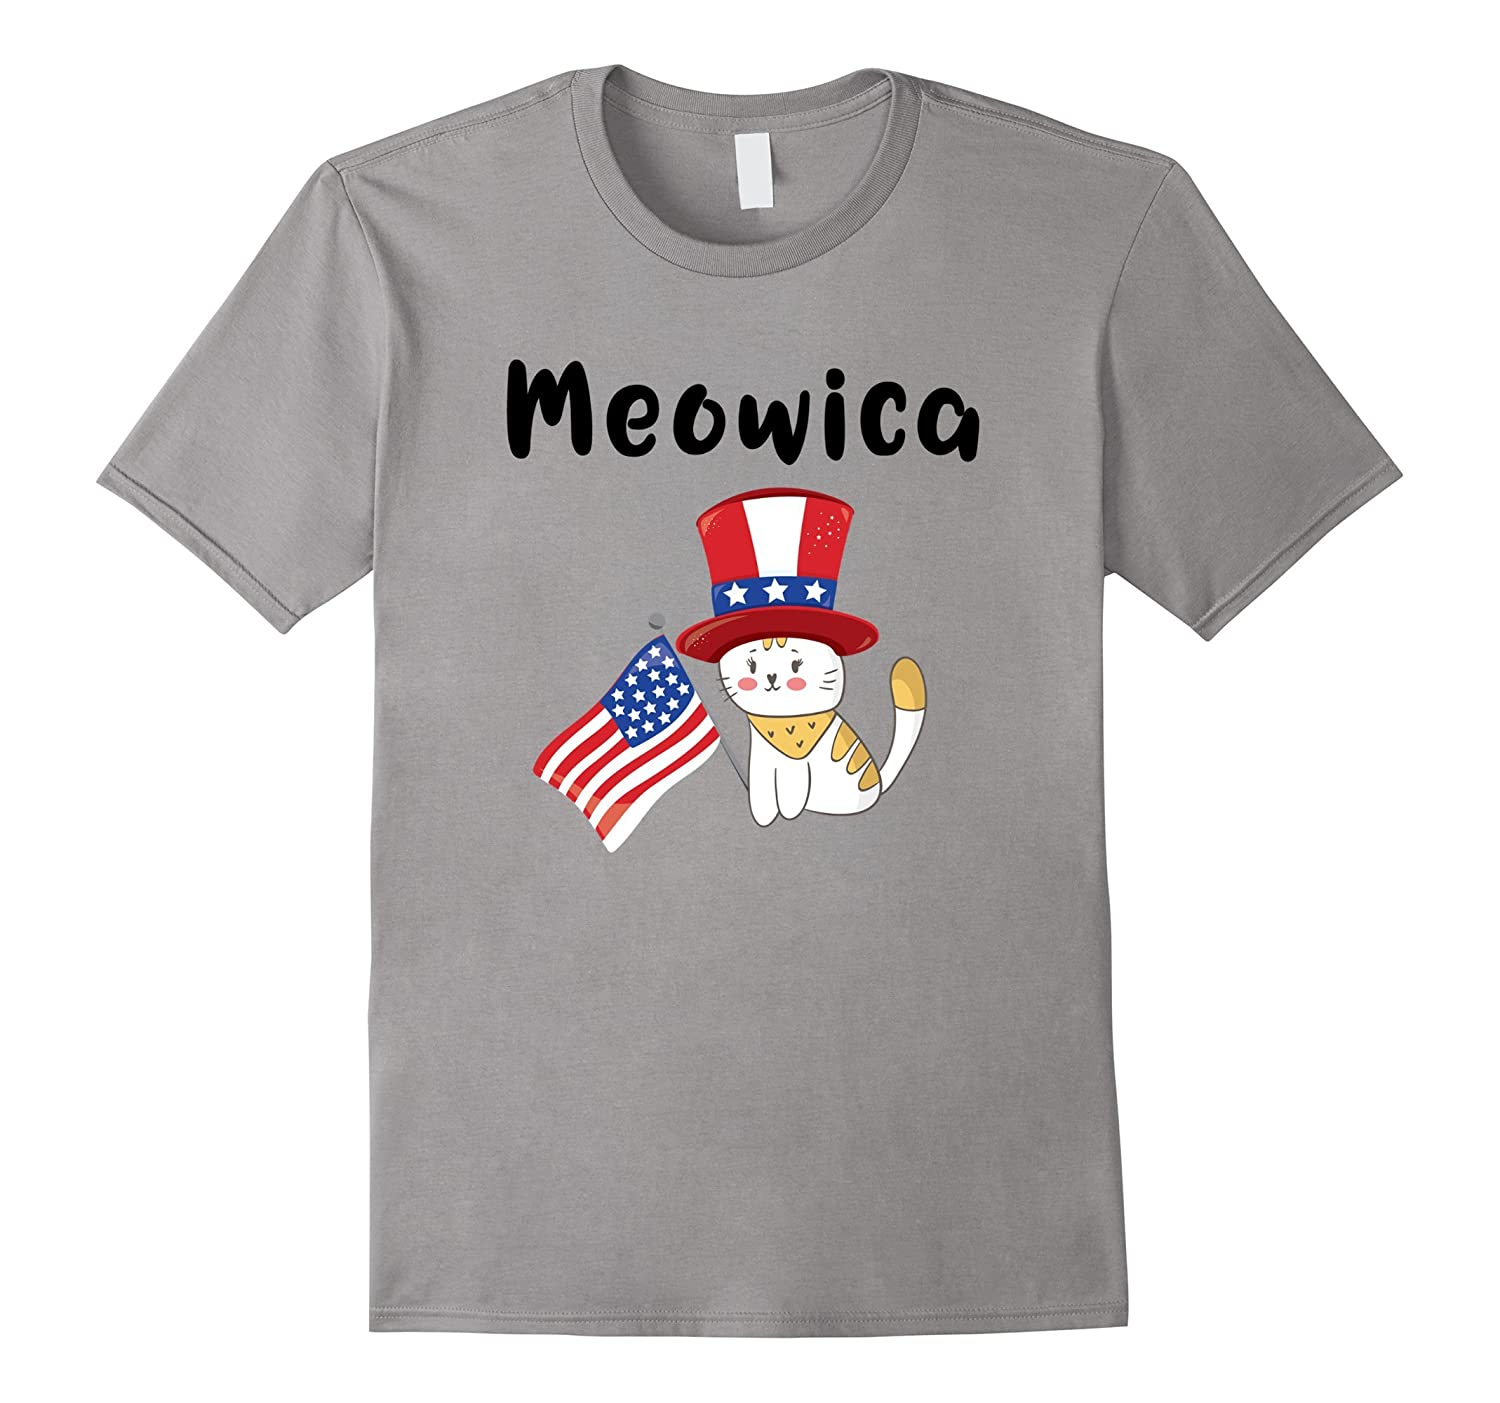 Meowica T-Shirt Cute Adult Kids Teen Fourth of July Shirt-TH